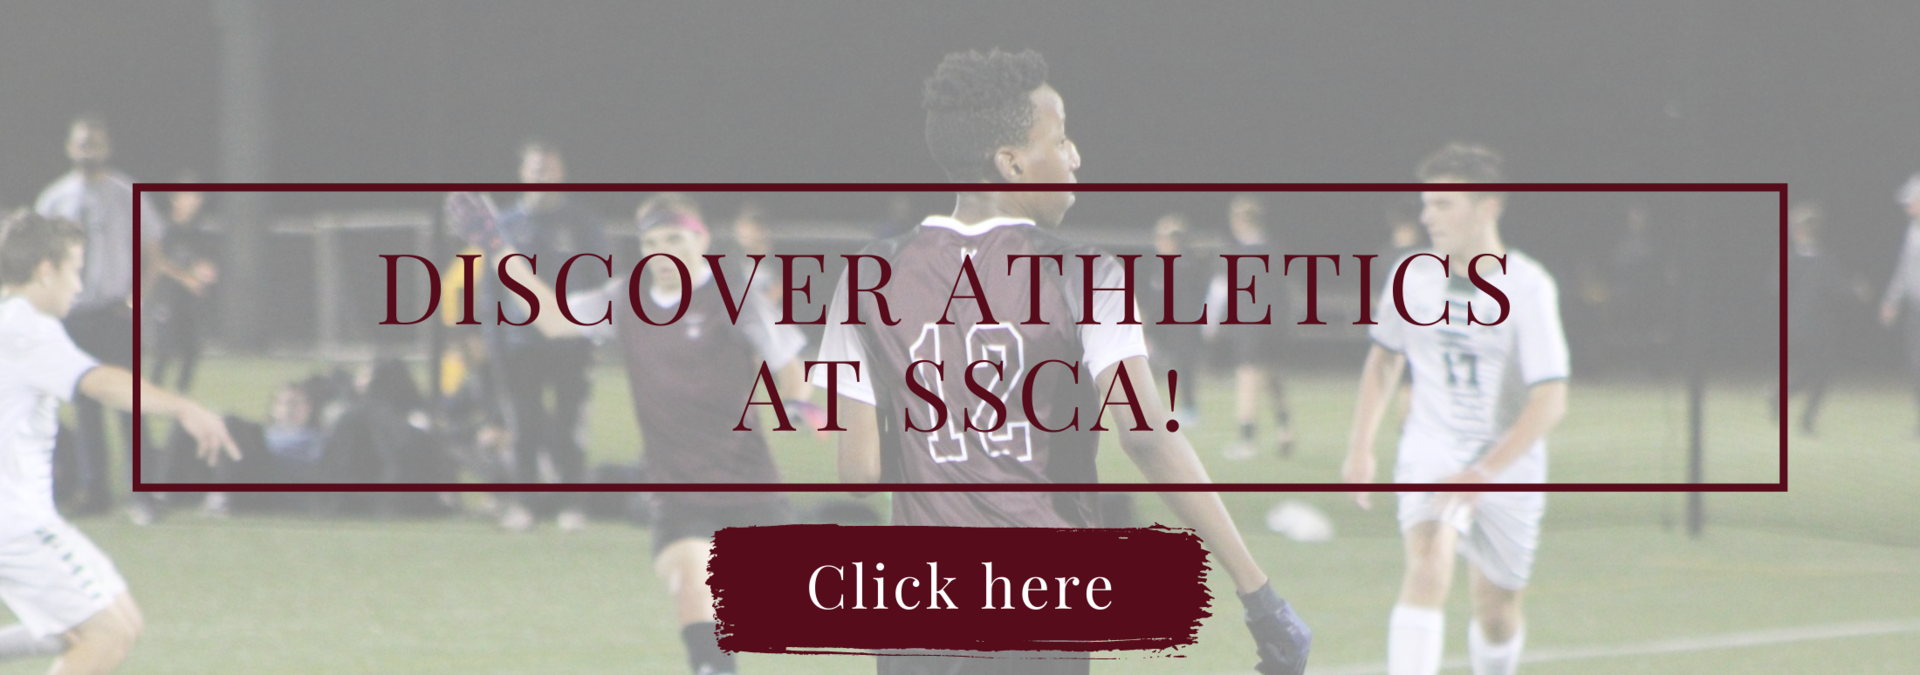 Discover athletics at SSCA!